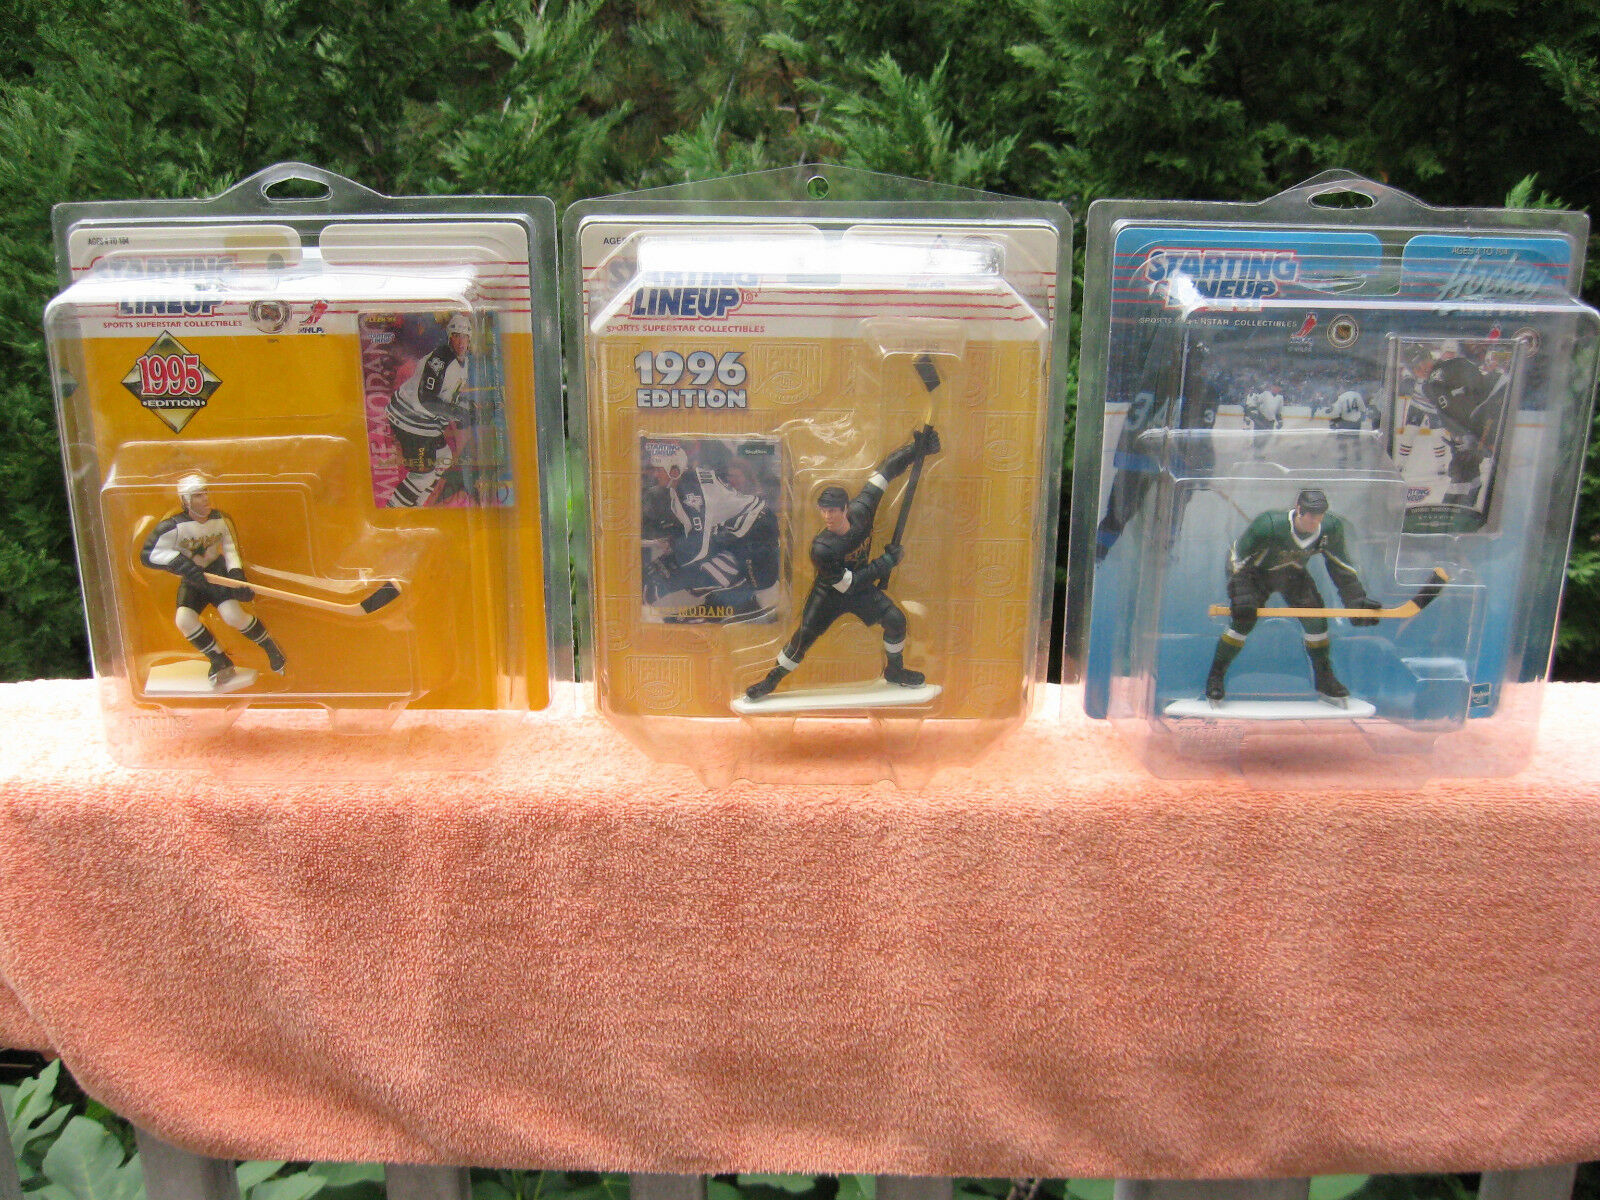 Lot of 3 Starting Lineup NHL Mike Madano Dallas Stars Action FiguresNew